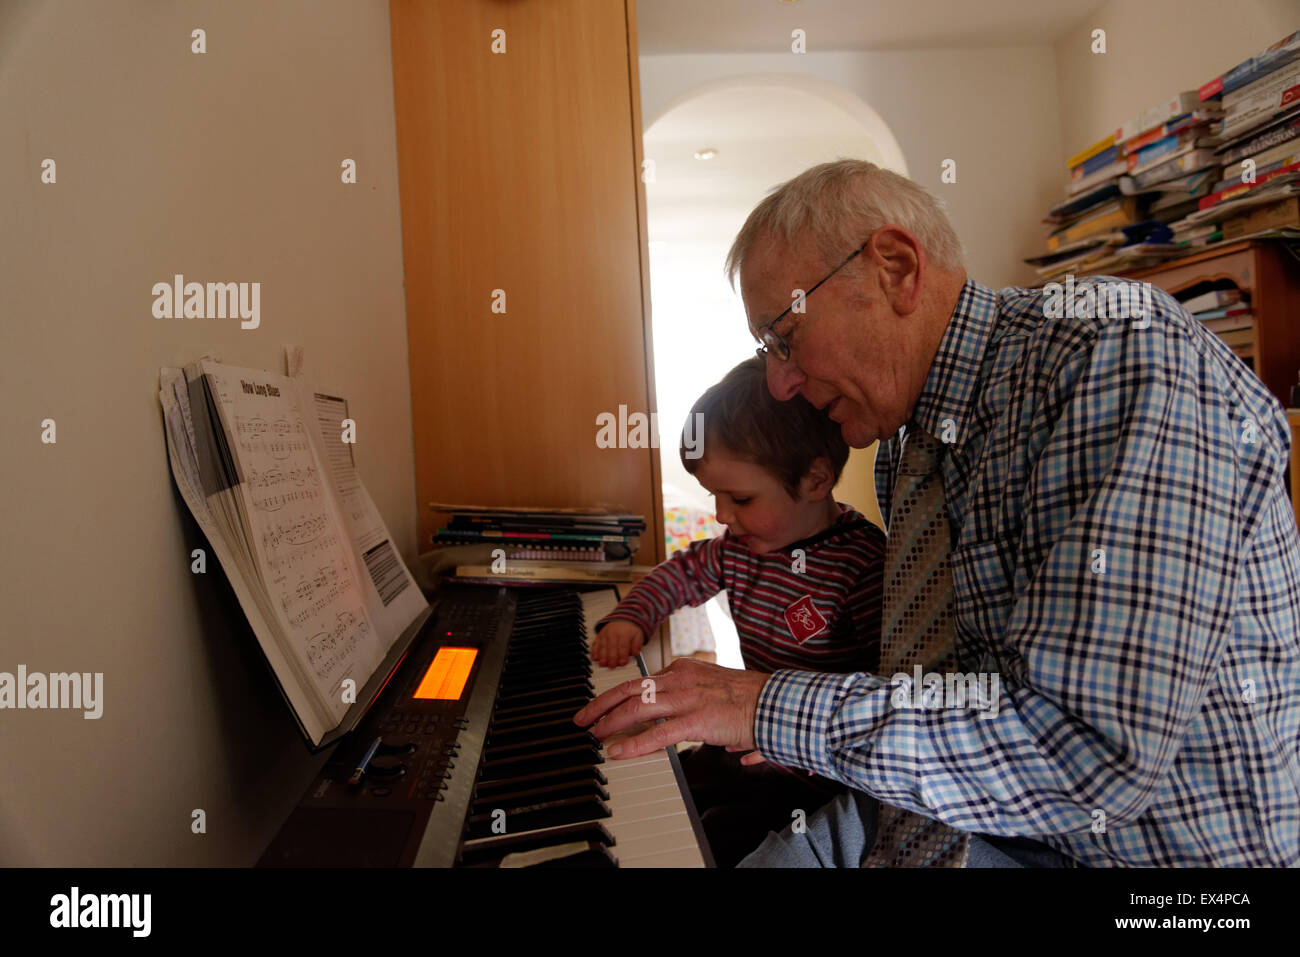 a-young-boy-3-yrs-old-playing-the-piano-with-his-grandfather-EX4PCA.jpg